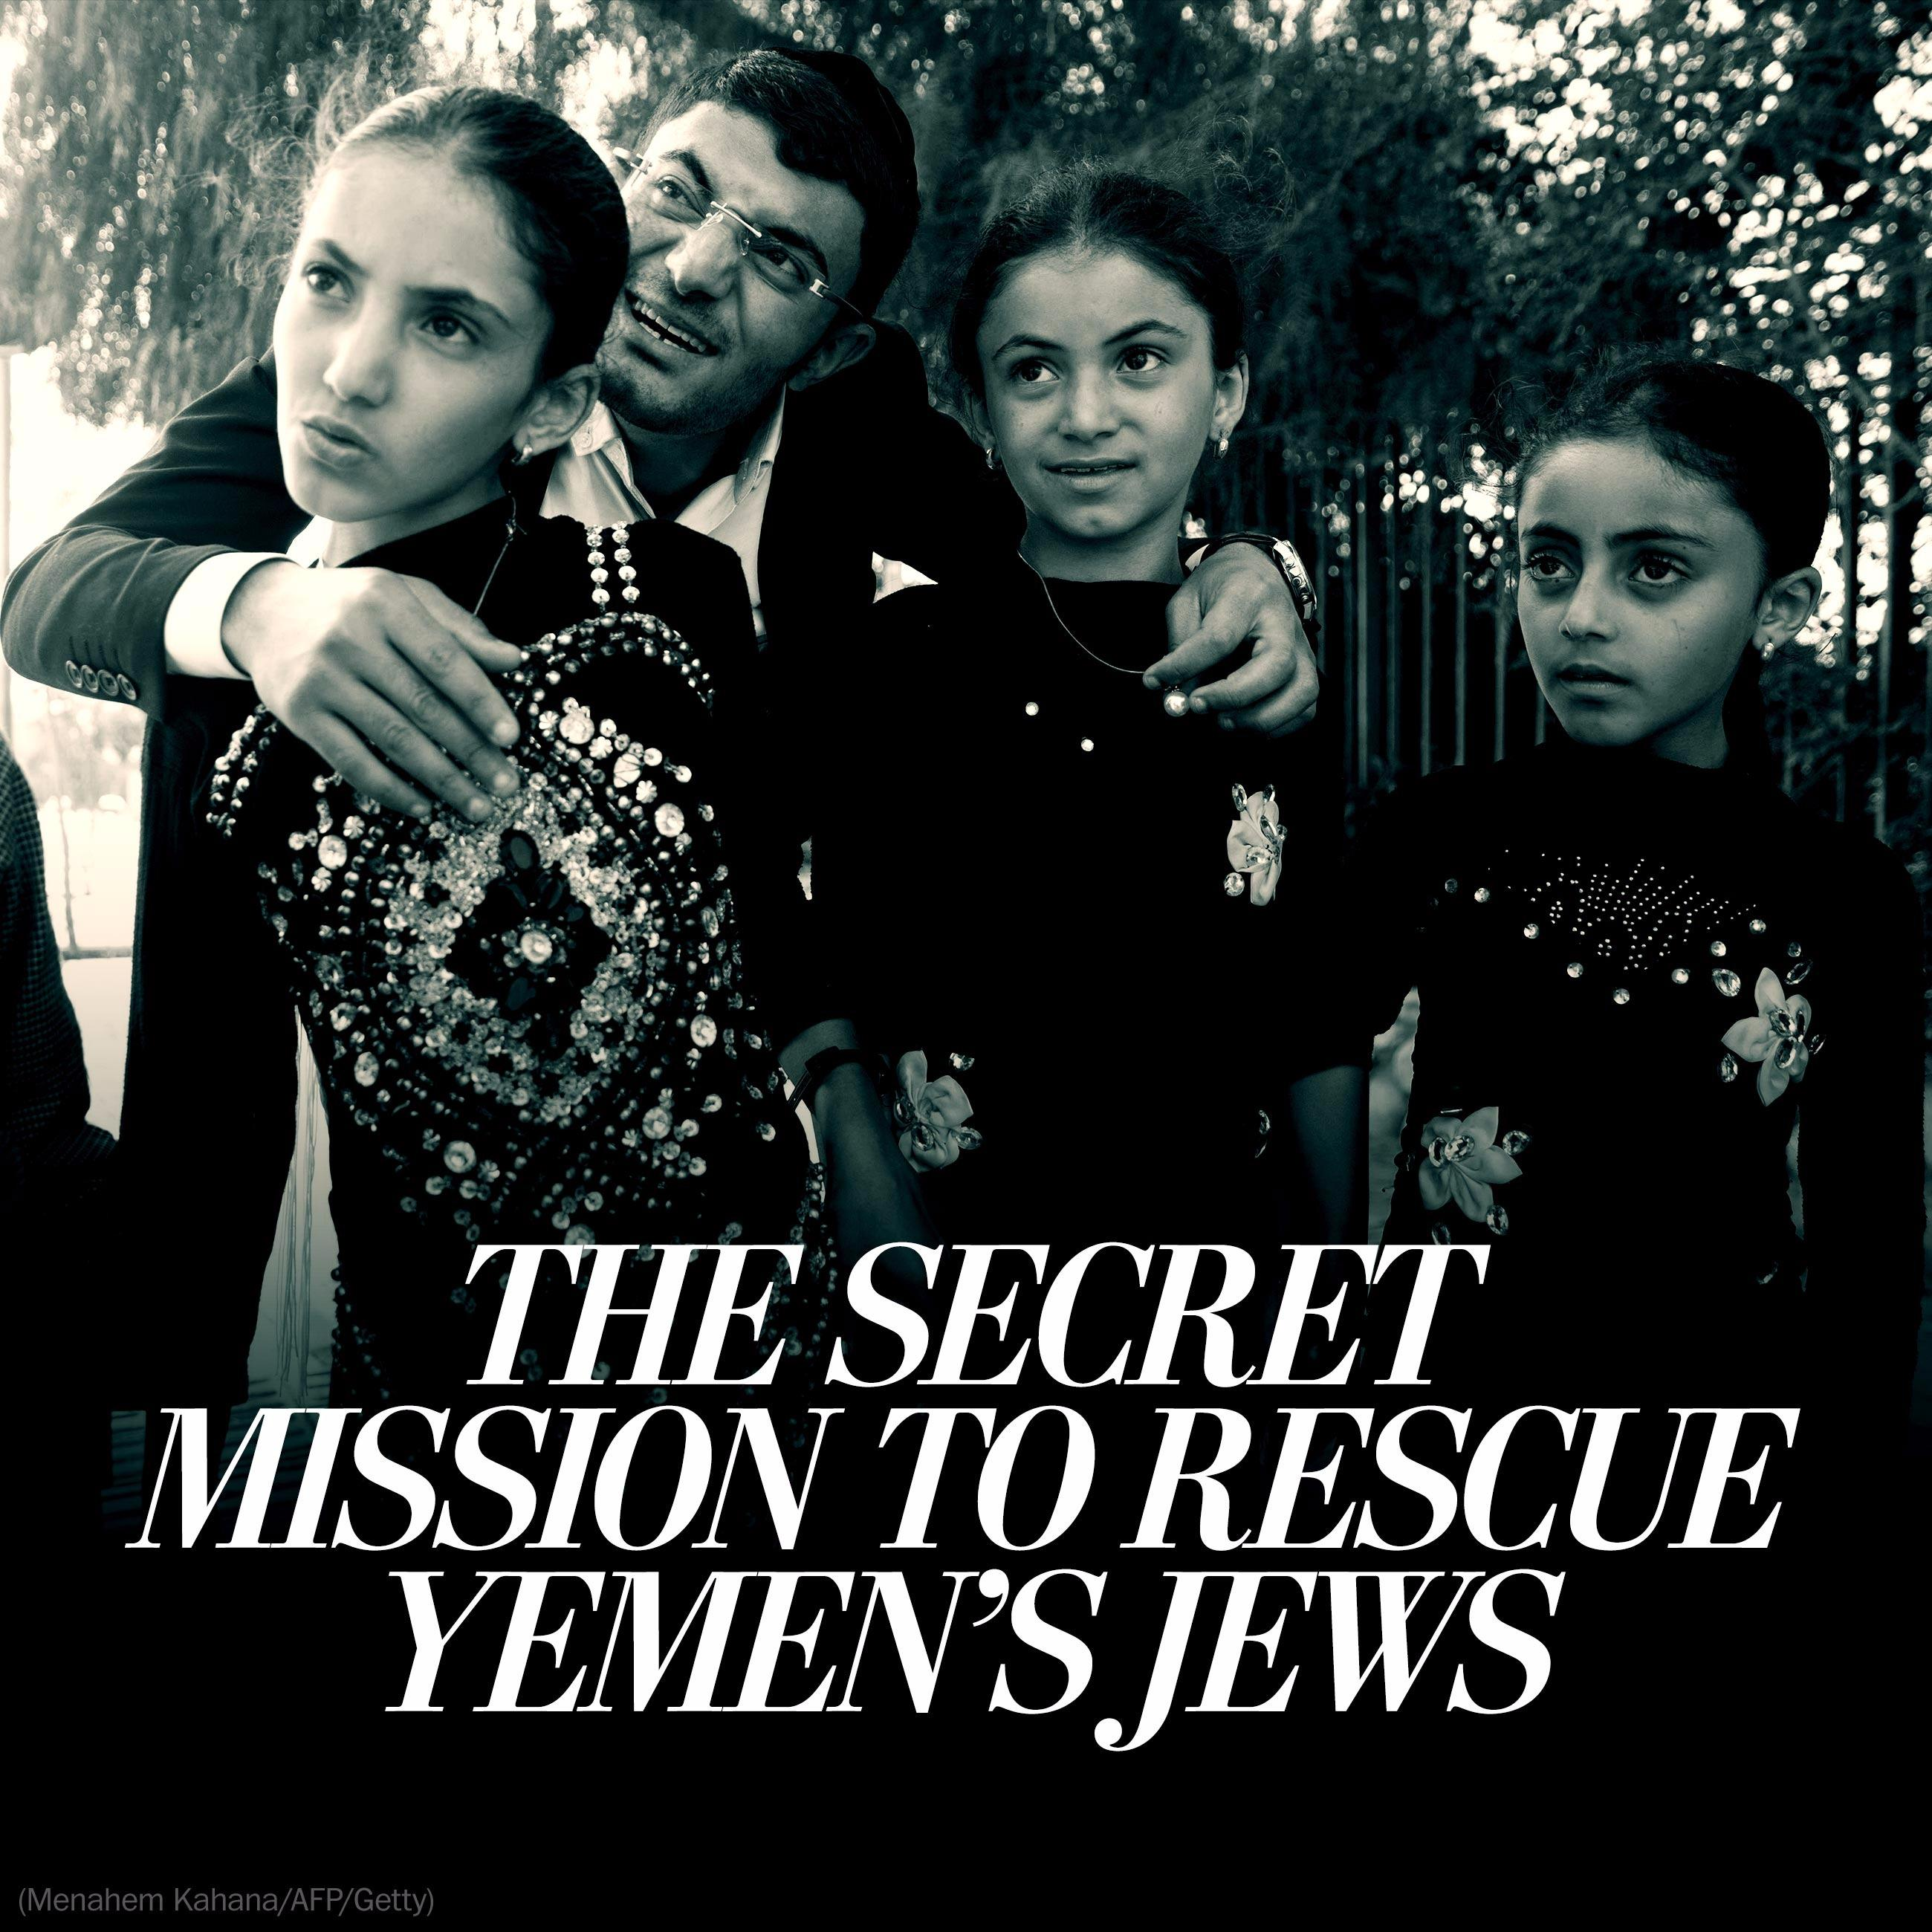 In secret mission, 17 Yemeni Jews escape civil war for new life in Israel